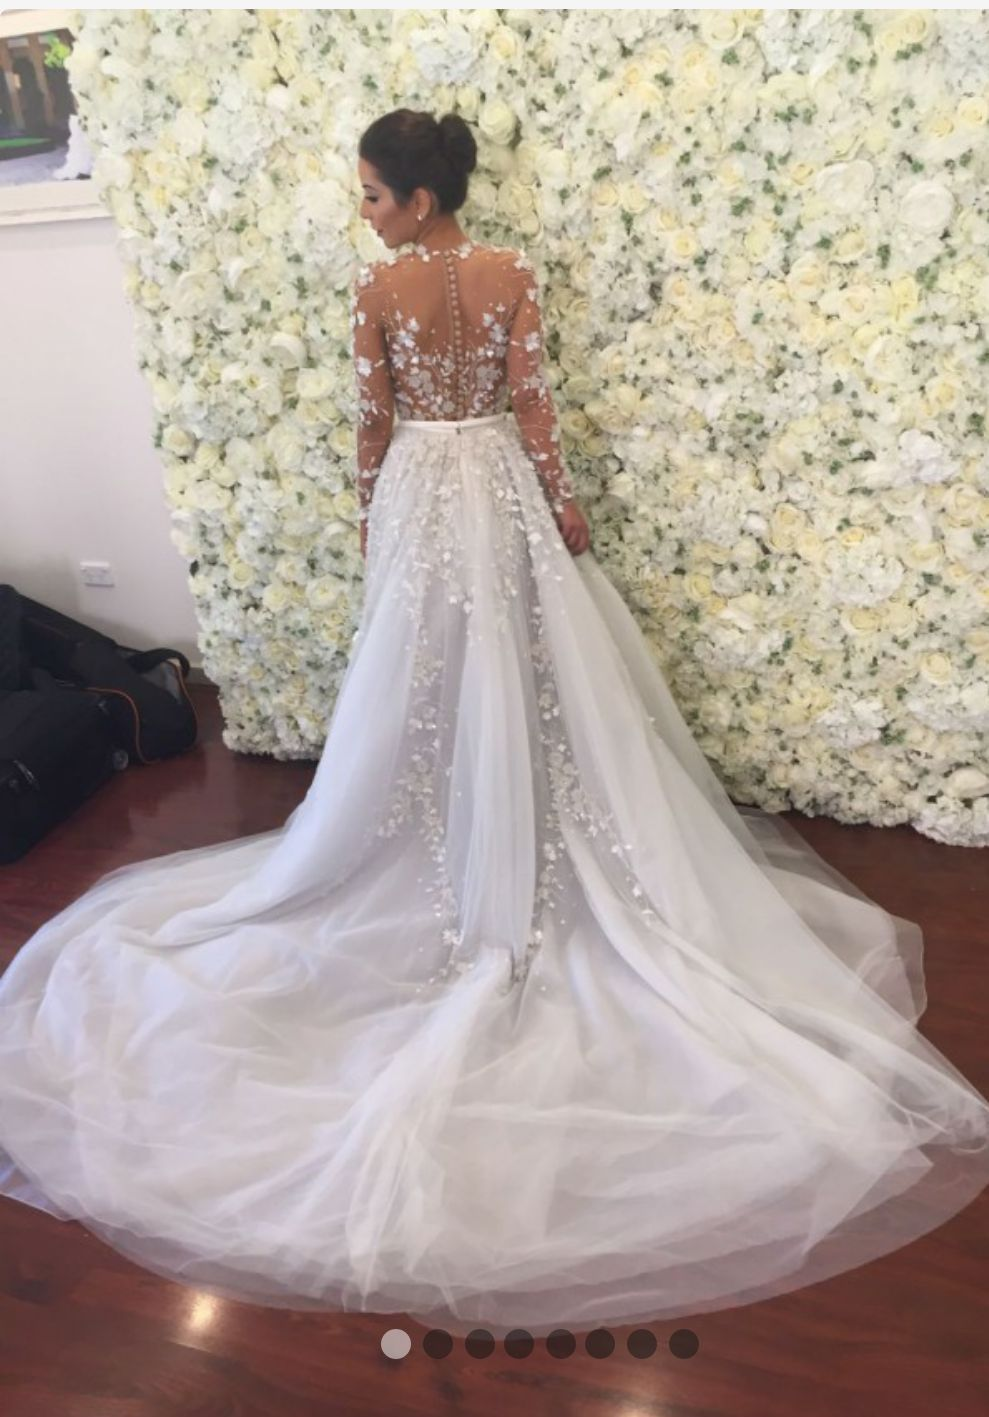 Custom Designed Paolo Sebastian Wedding Gown Comes With Long Veil Detachable Full Skirt And Under Garment Please Note The Undergarment Was Not Worn On